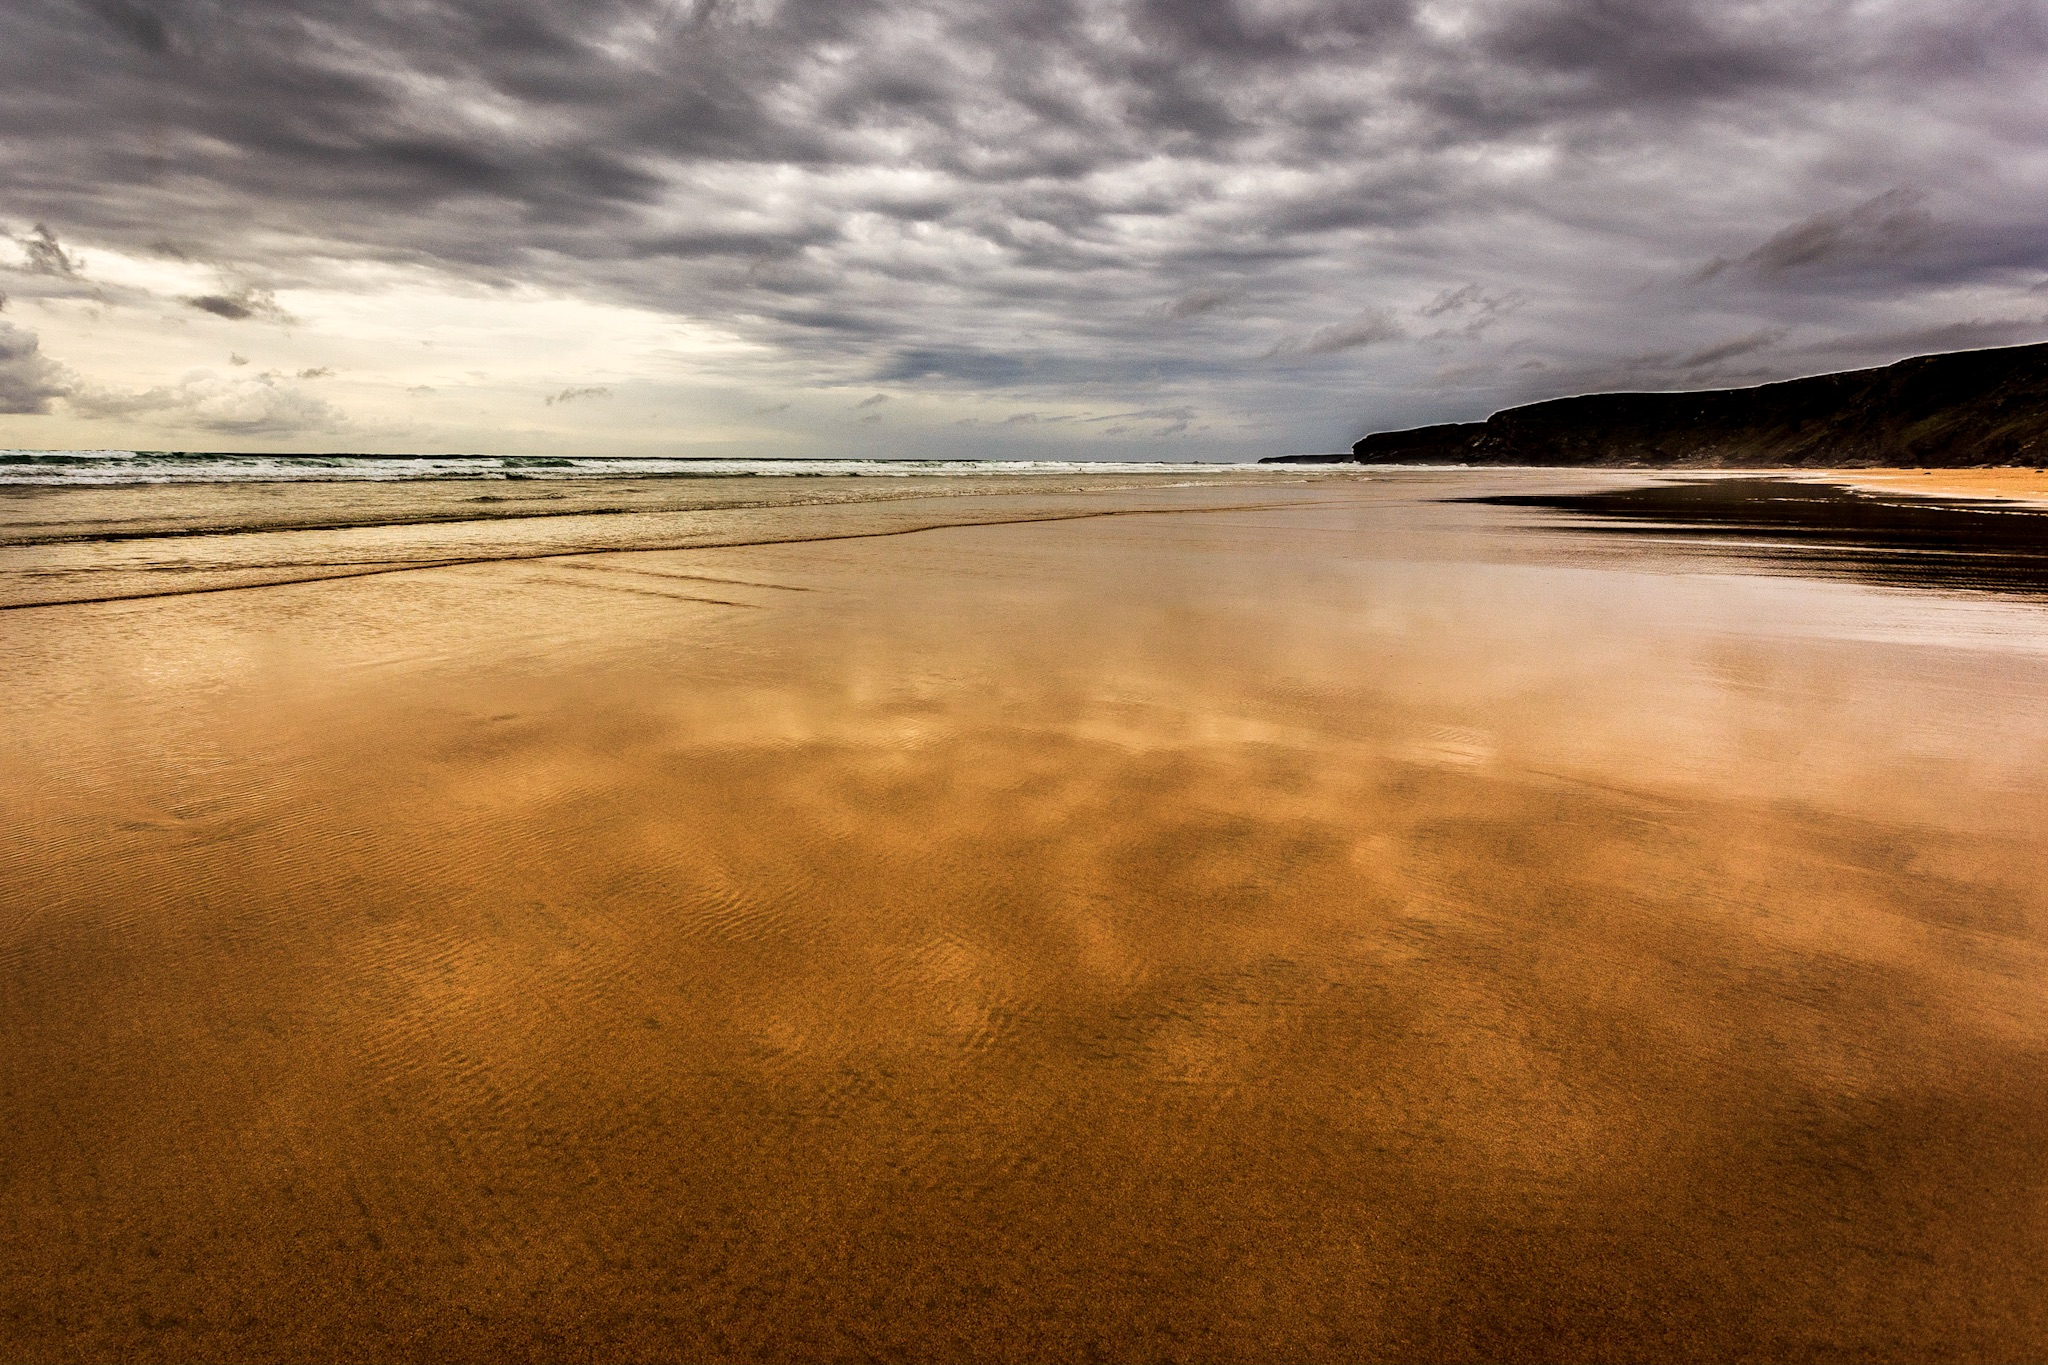 Lightroom edit of the picture of Watergate Bay beach